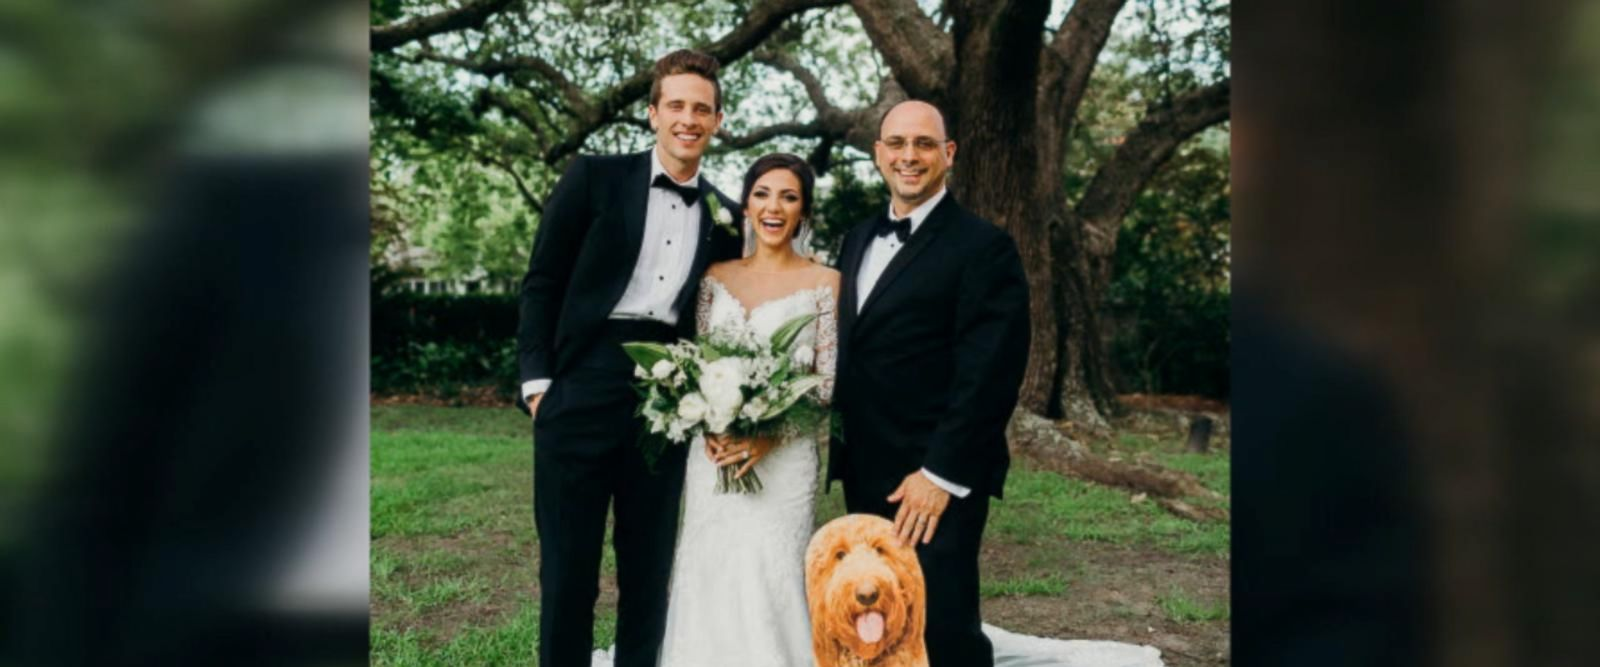 Hillary Bowles' dad surprised her with a cardboard cutout of her dog, Leo, at her July 3 wedding in Charleston, South Carolina.